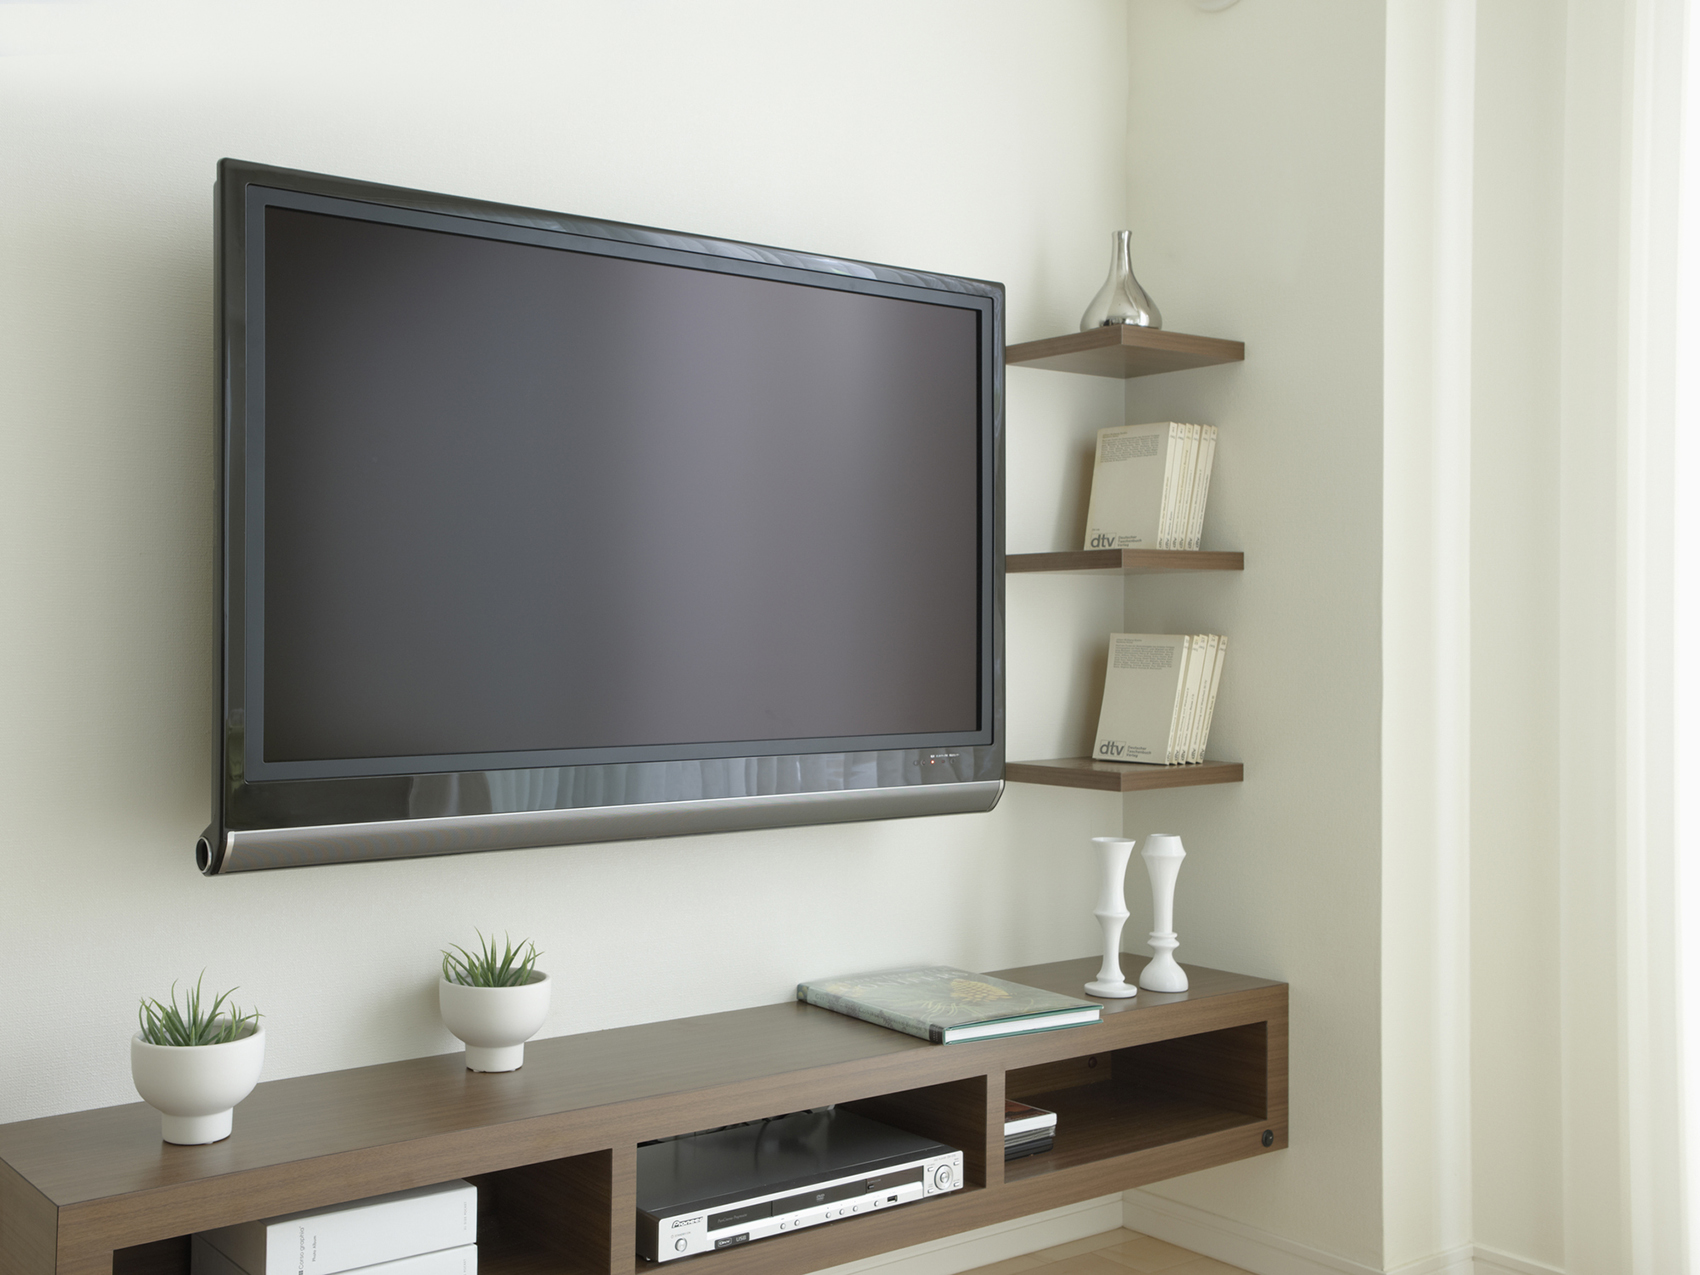 Flat-screen television and media console in living room